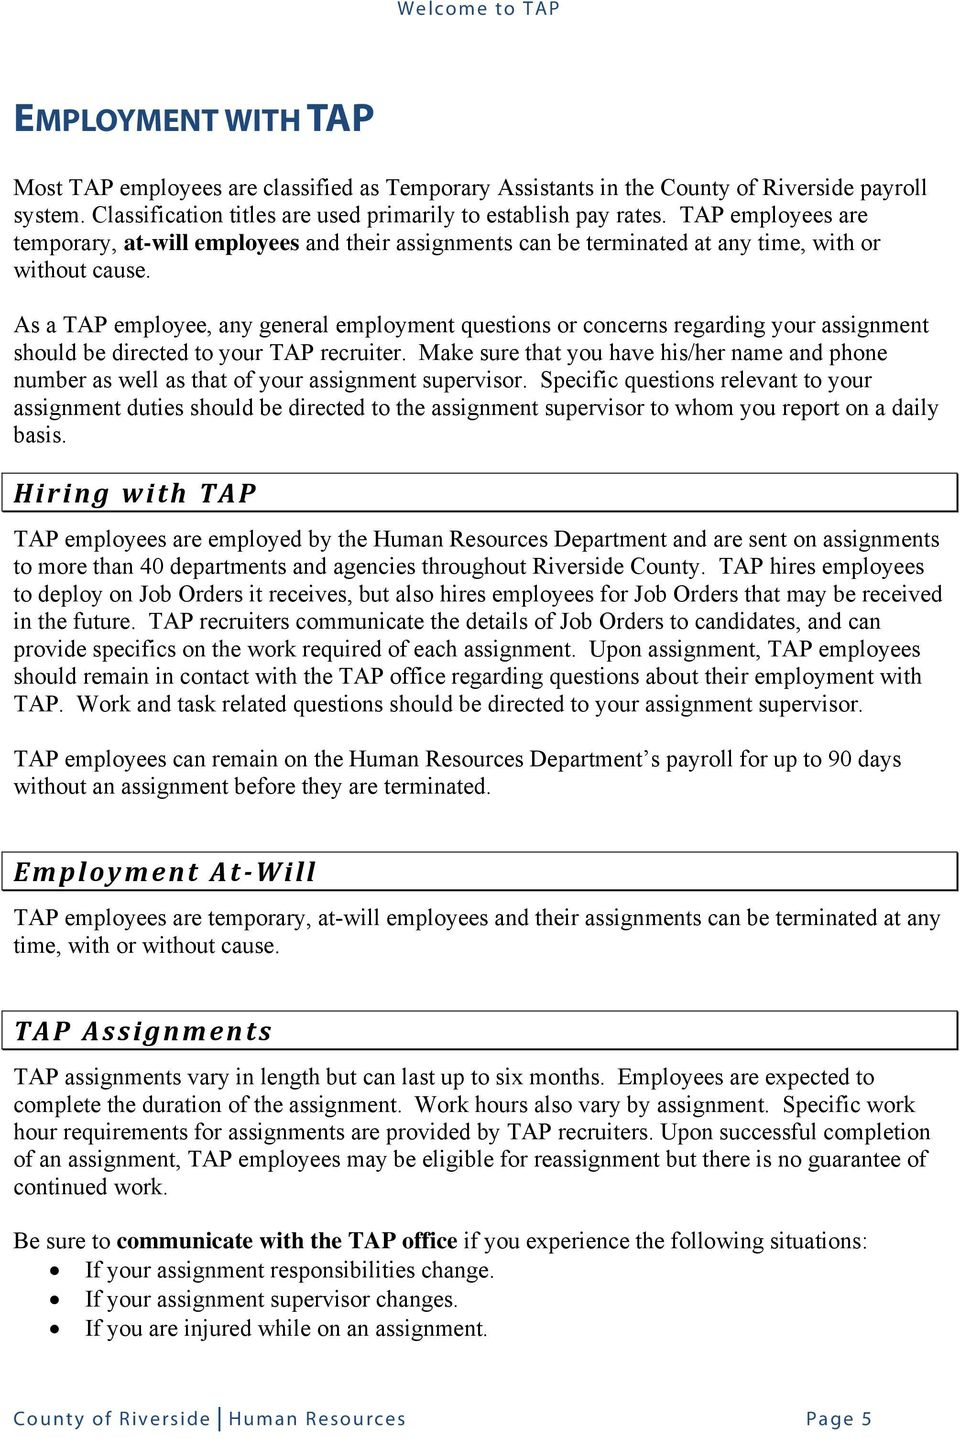 As a TAP employee, any general employment questions or concerns regarding your assignment should be directed to your TAP recruiter.